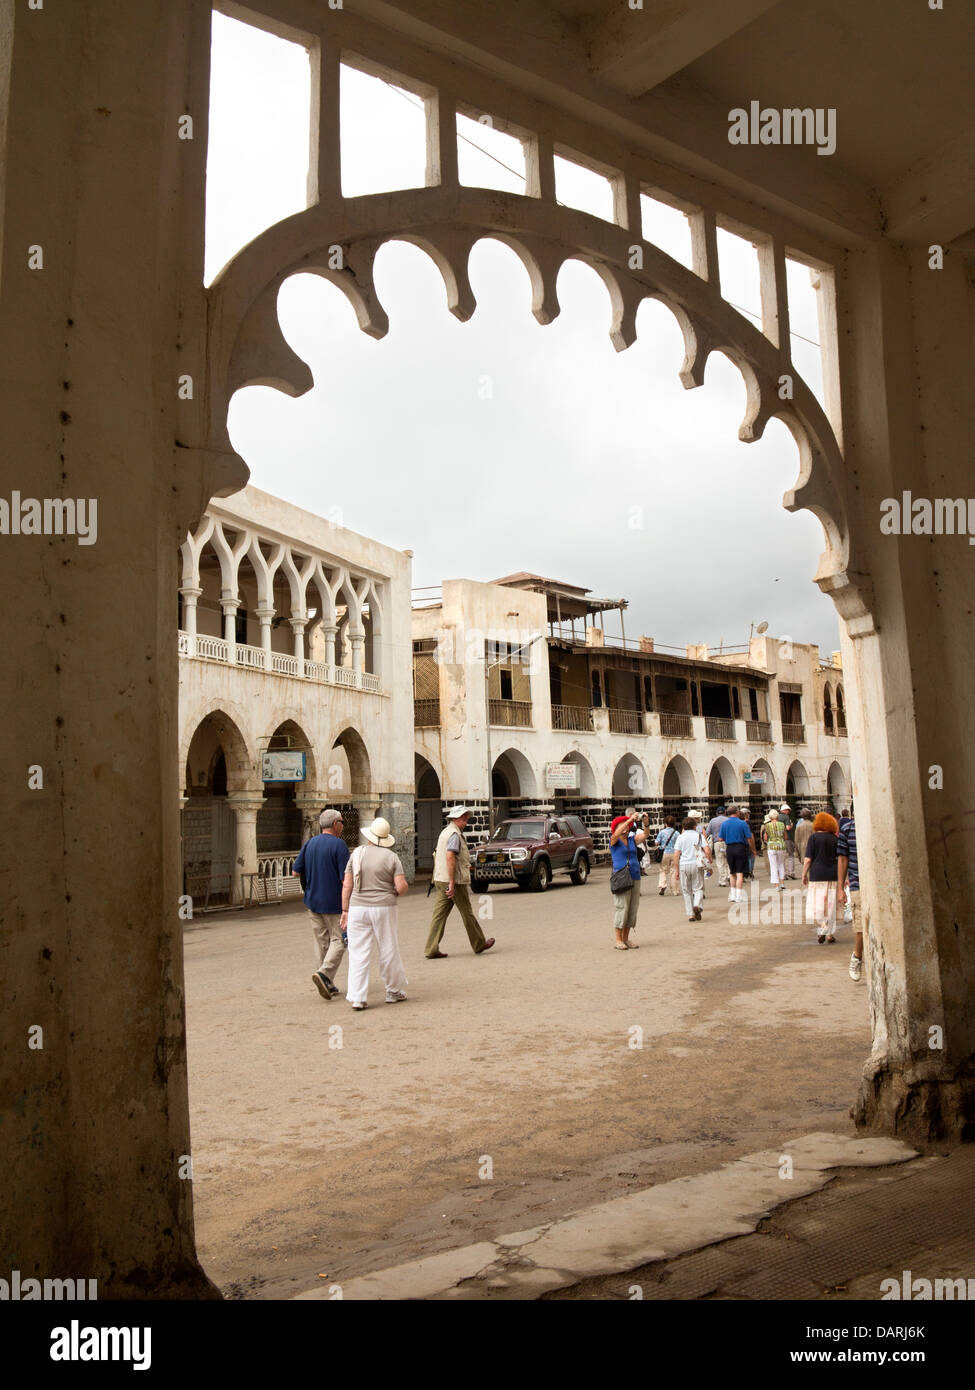 Africa, Eritrea, Massawa, Old Town, group of cruise ship passengers passing Ottoman architecture building - Stock Image